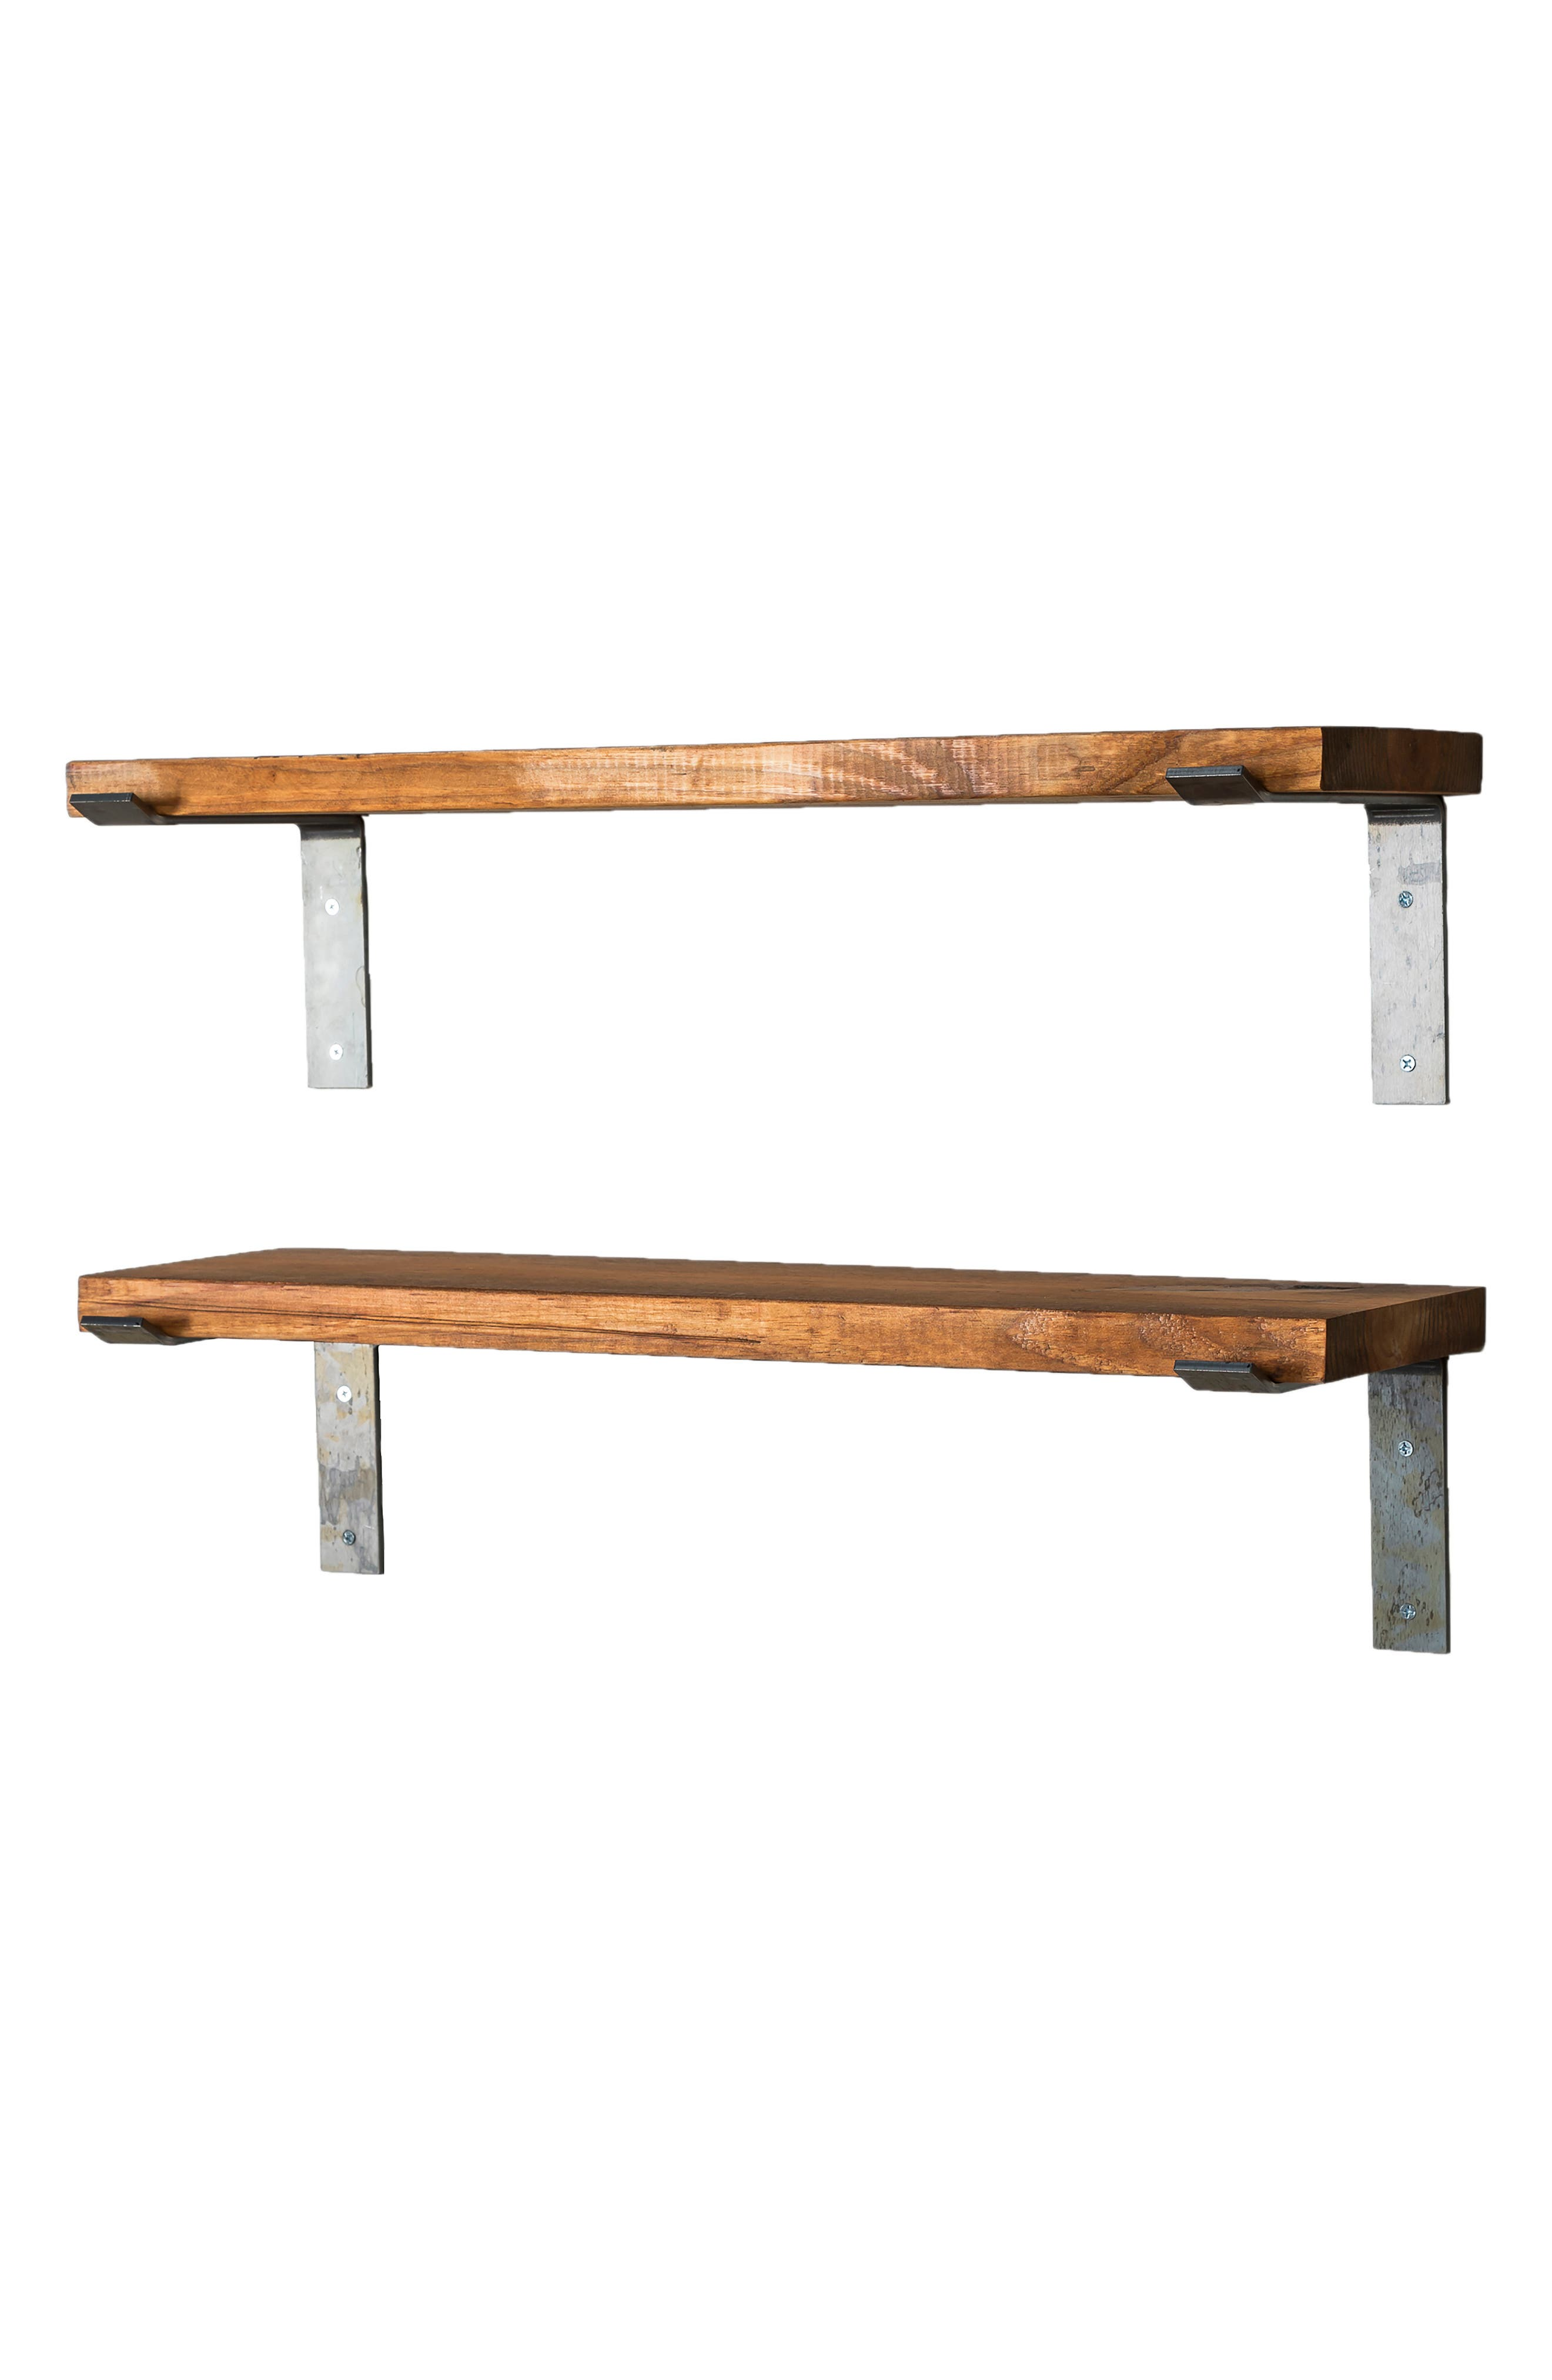 Set of 2 Industrial Bracket Shelves,                             Alternate thumbnail 2, color,                             200